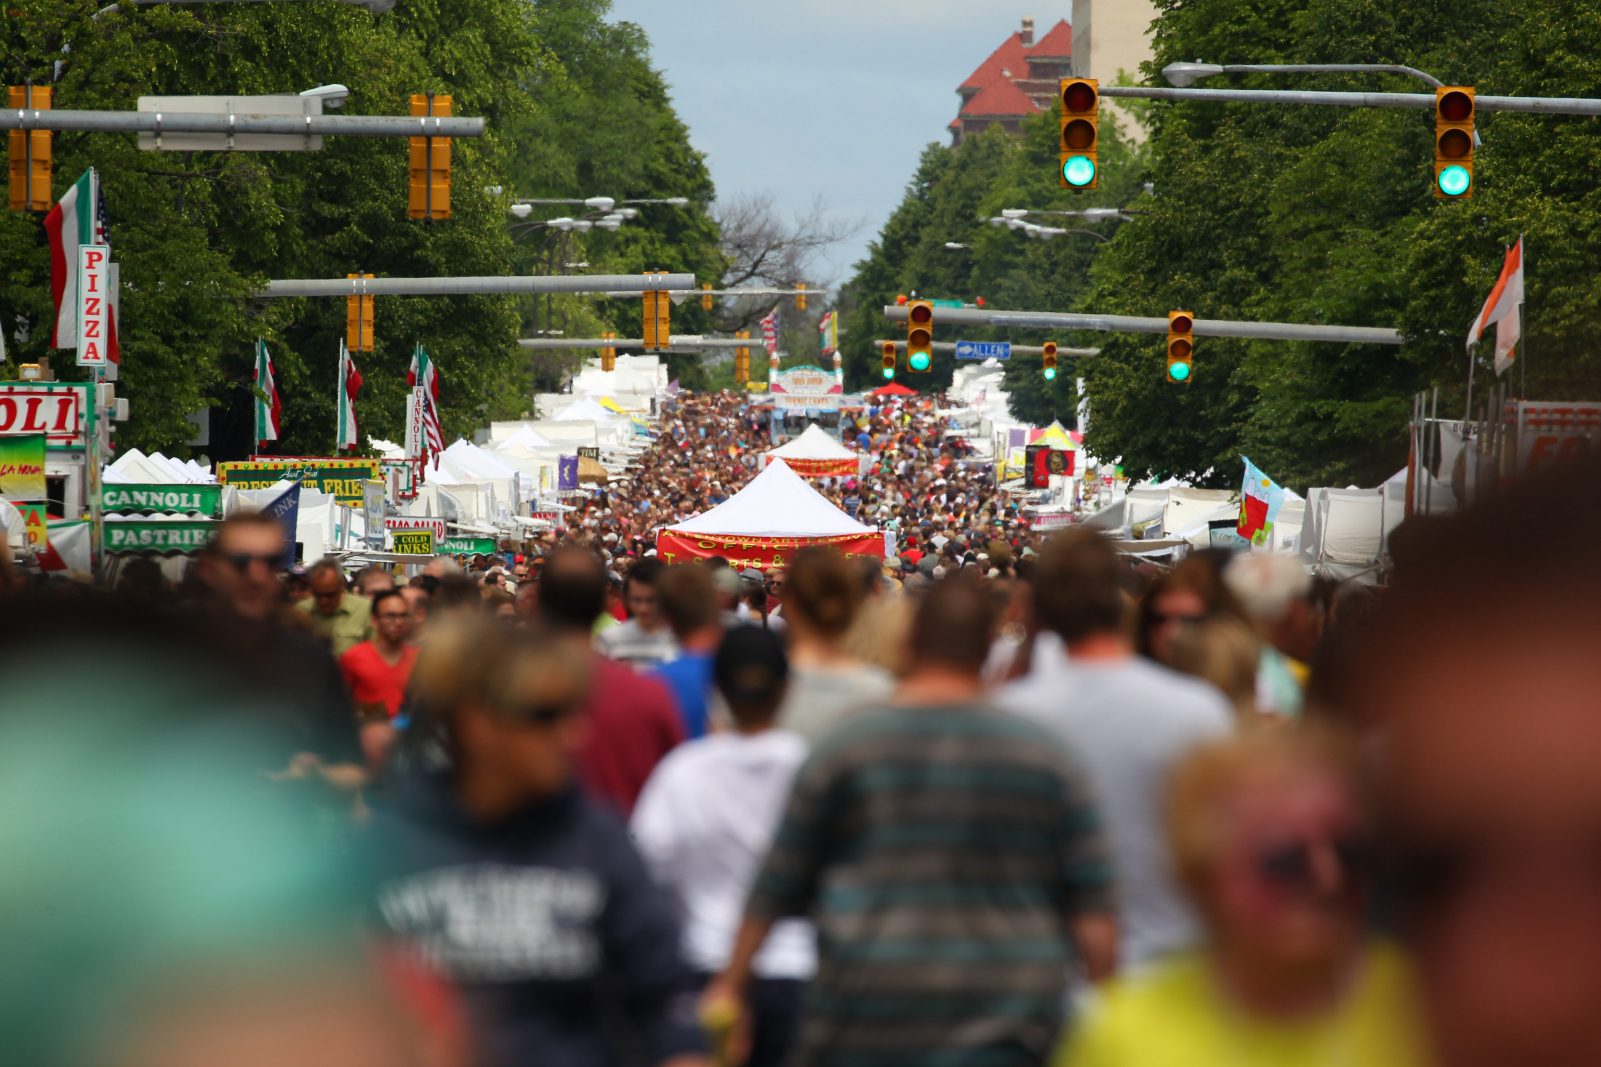 Crowds will fill Delaware Avenue again during the Allentown Art Festival. (Mark Mulville/Buffalo News)